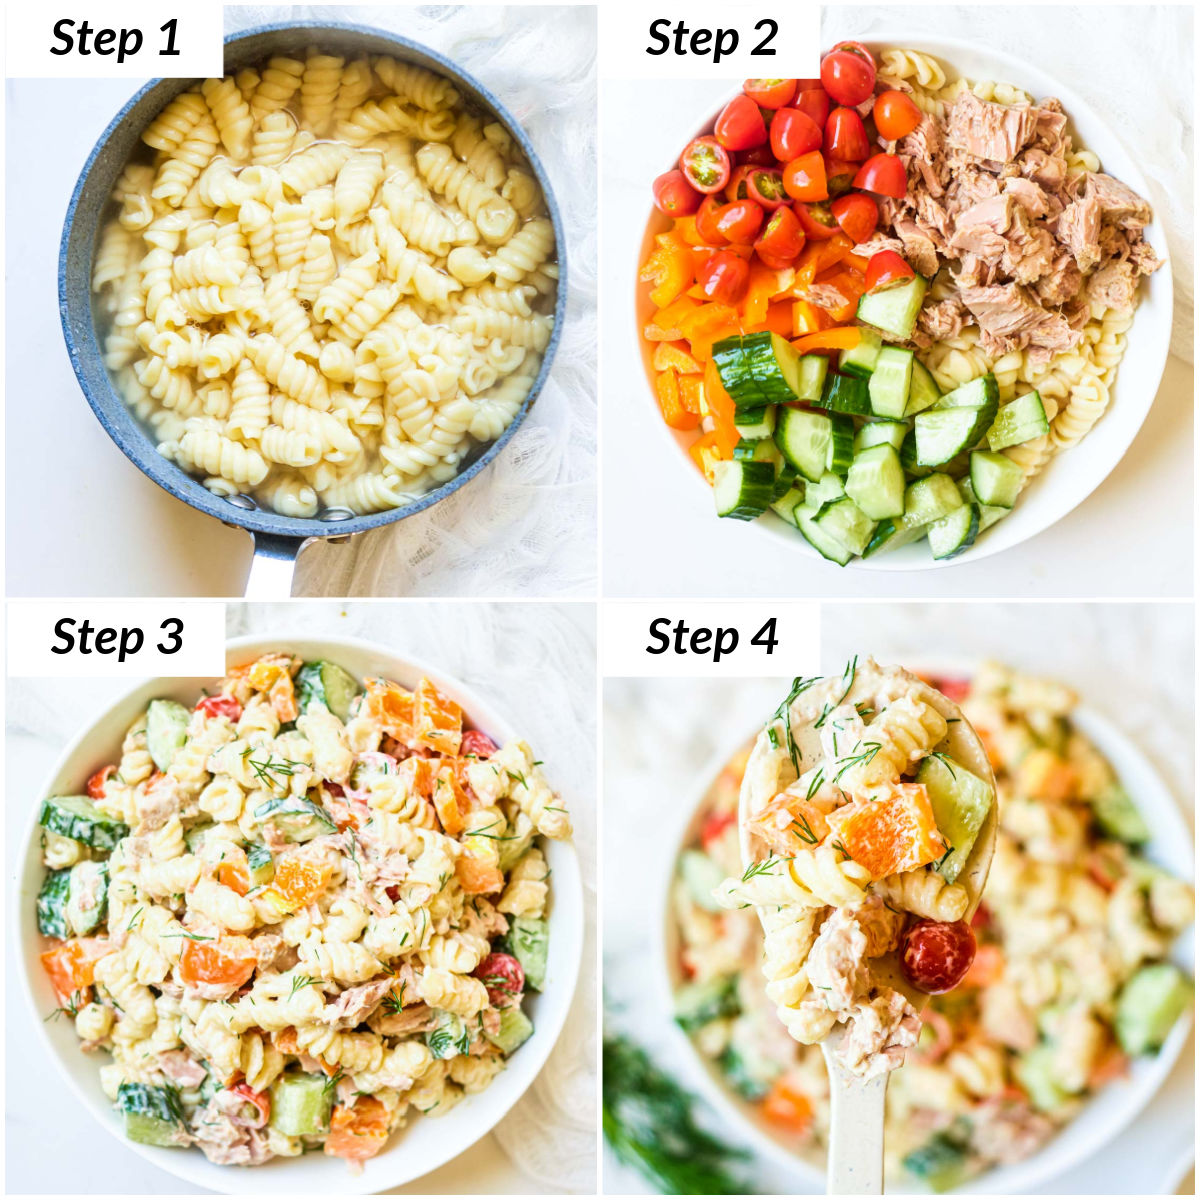 image collage showing the steps for making tuna pasta salad